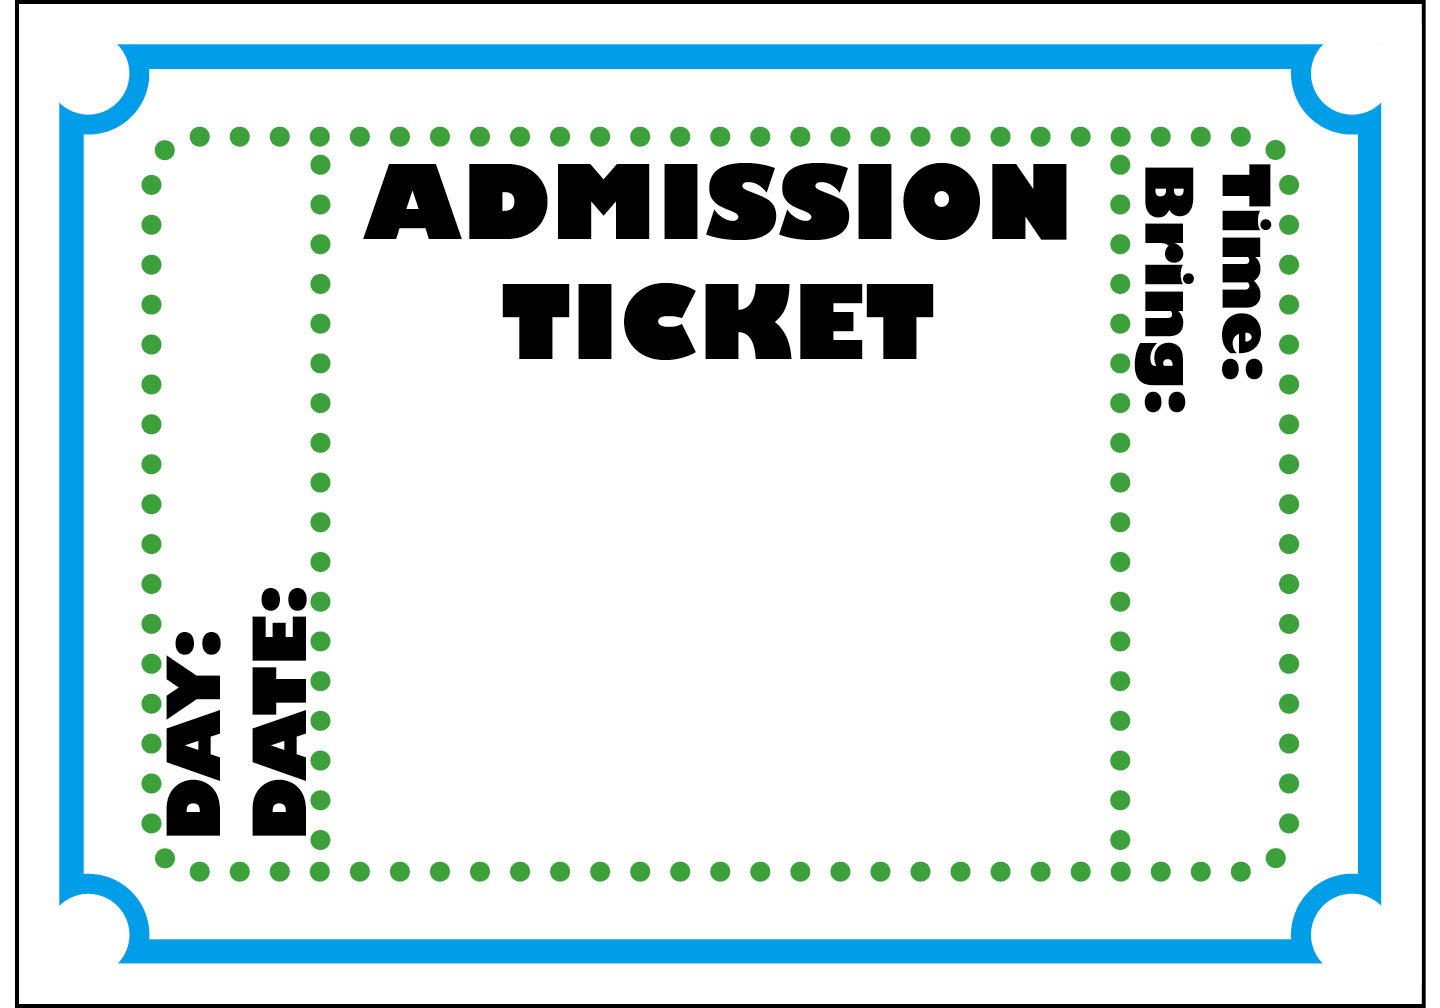 Free blank ticket cliparts. Tickets clipart fake